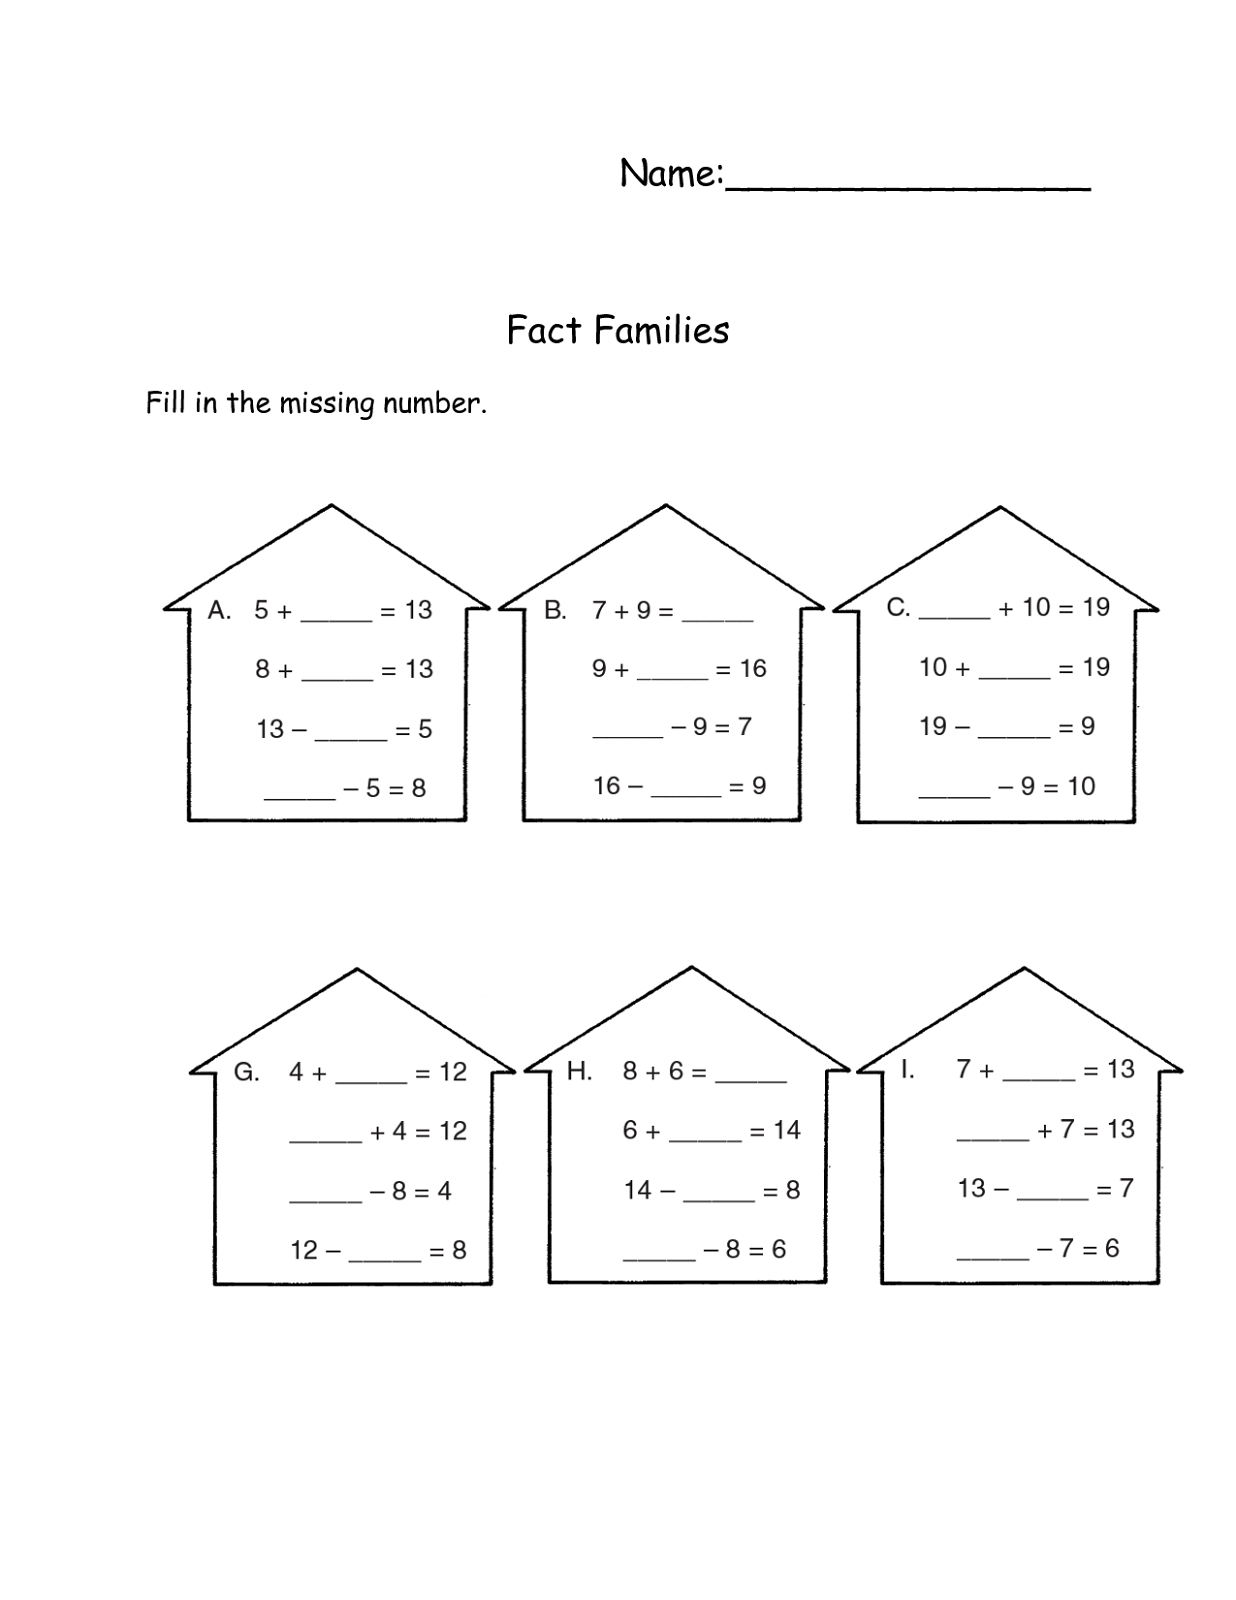 Blank Fact Family Worksheets – Fill in the Blank Math Worksheets